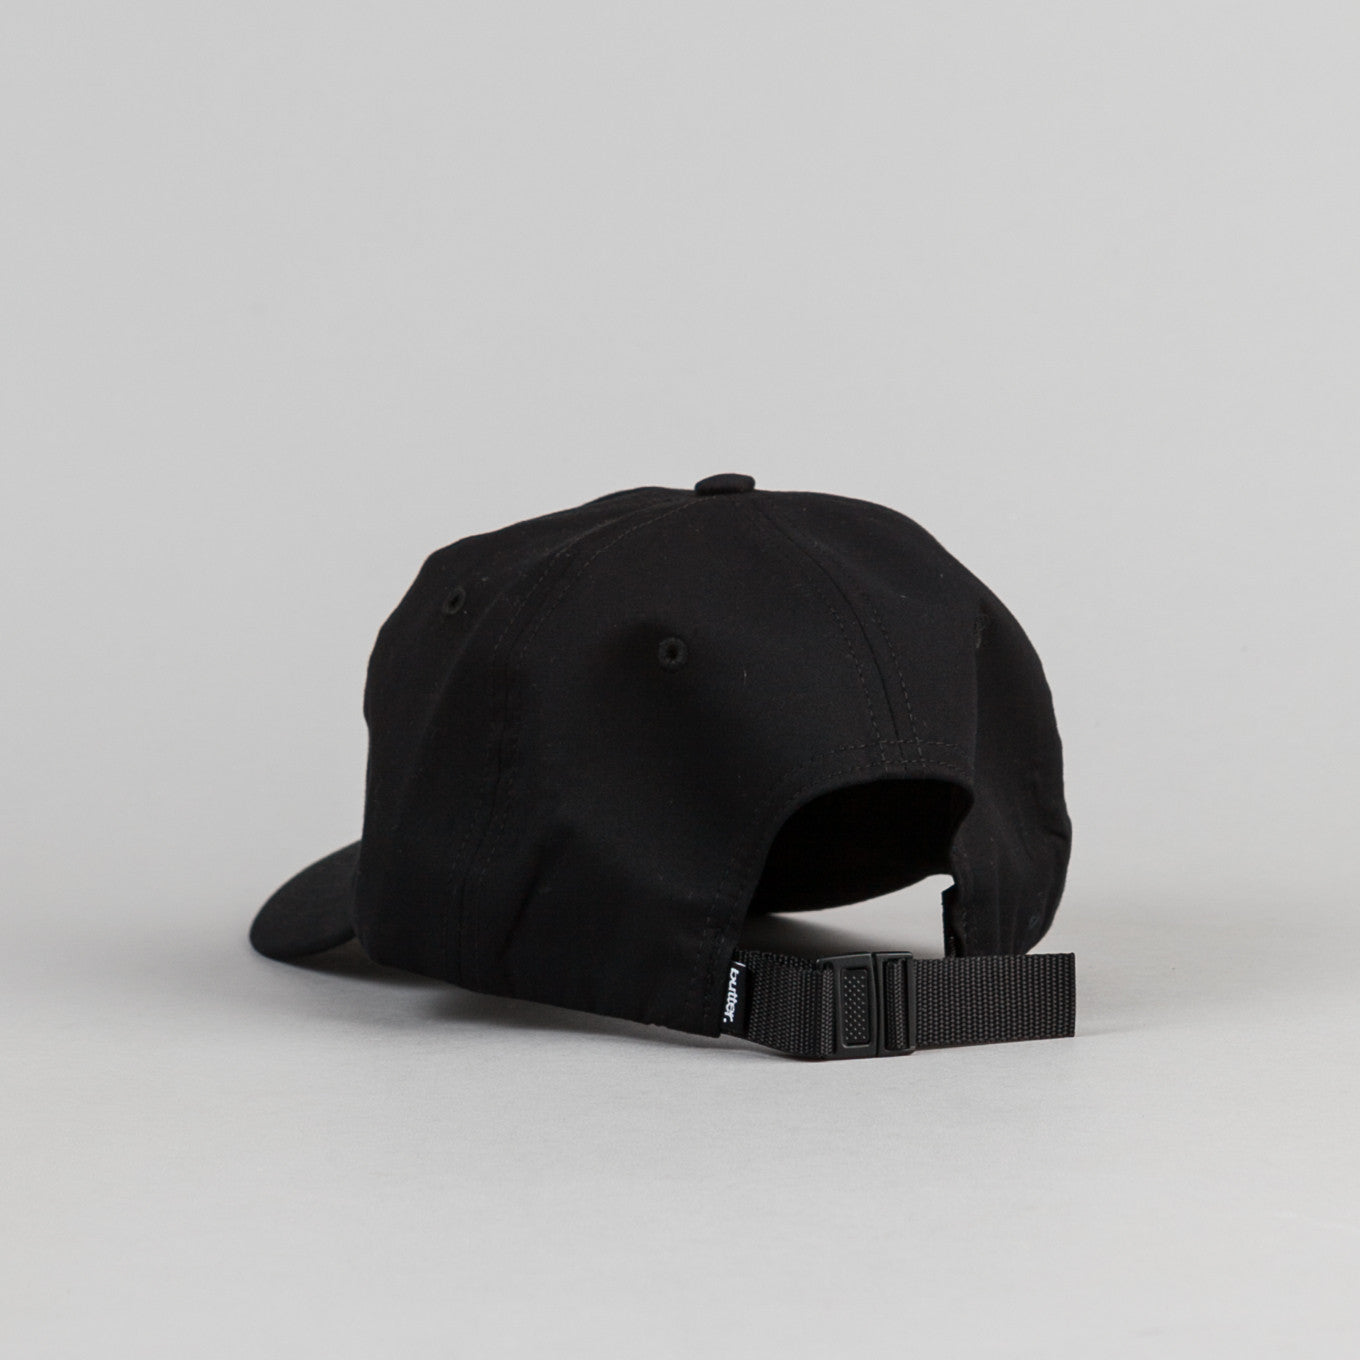 Butter Goods Rugged Terrain Cap - Black